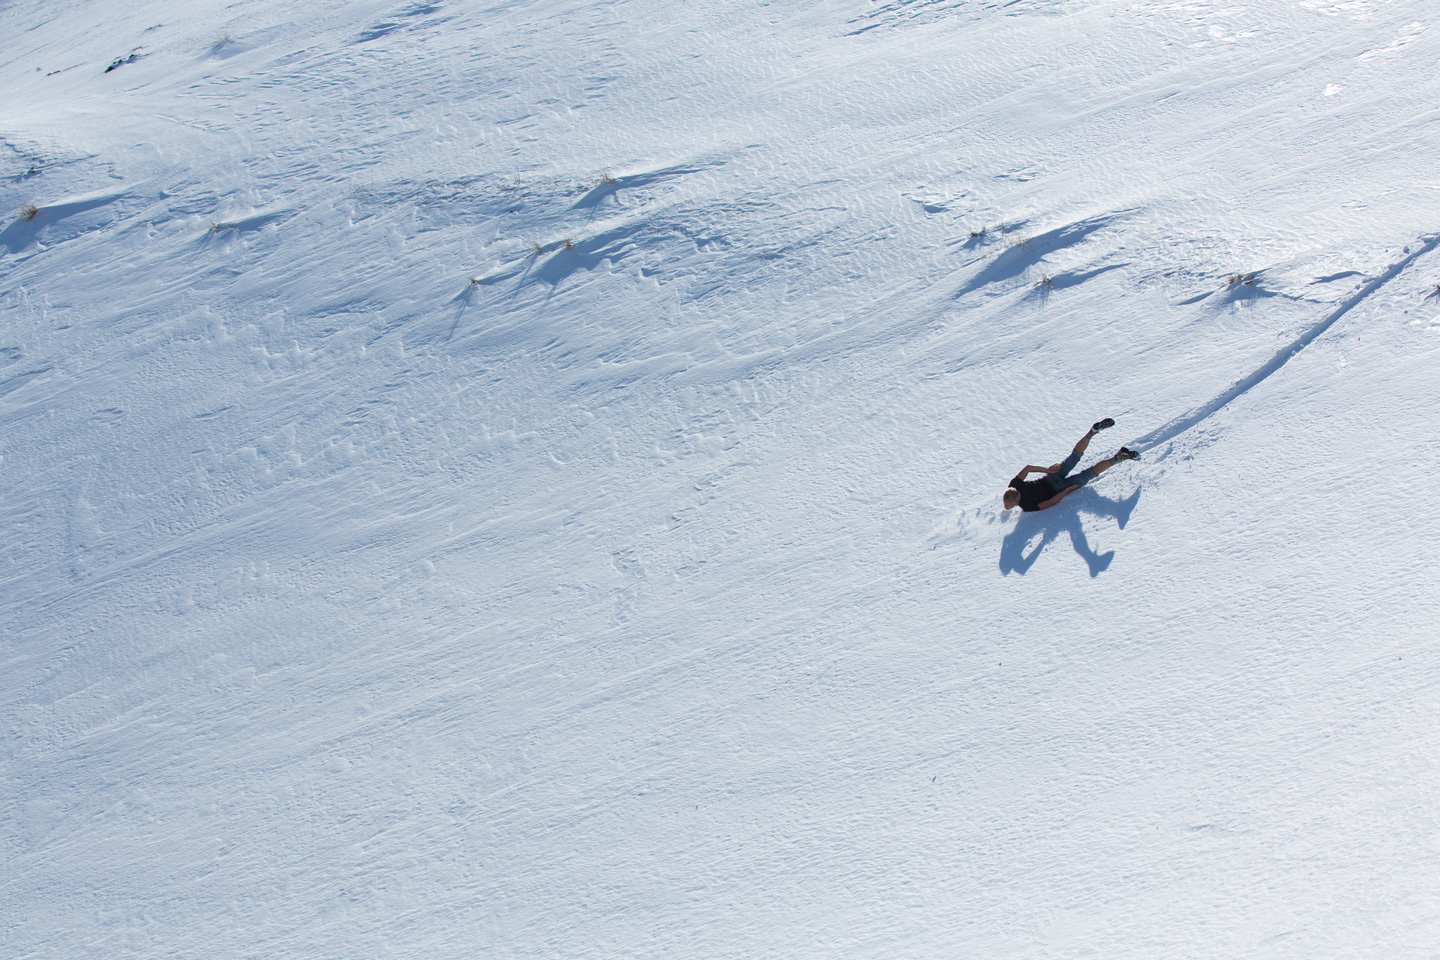 Bridger sliding like a penguin on its belly.